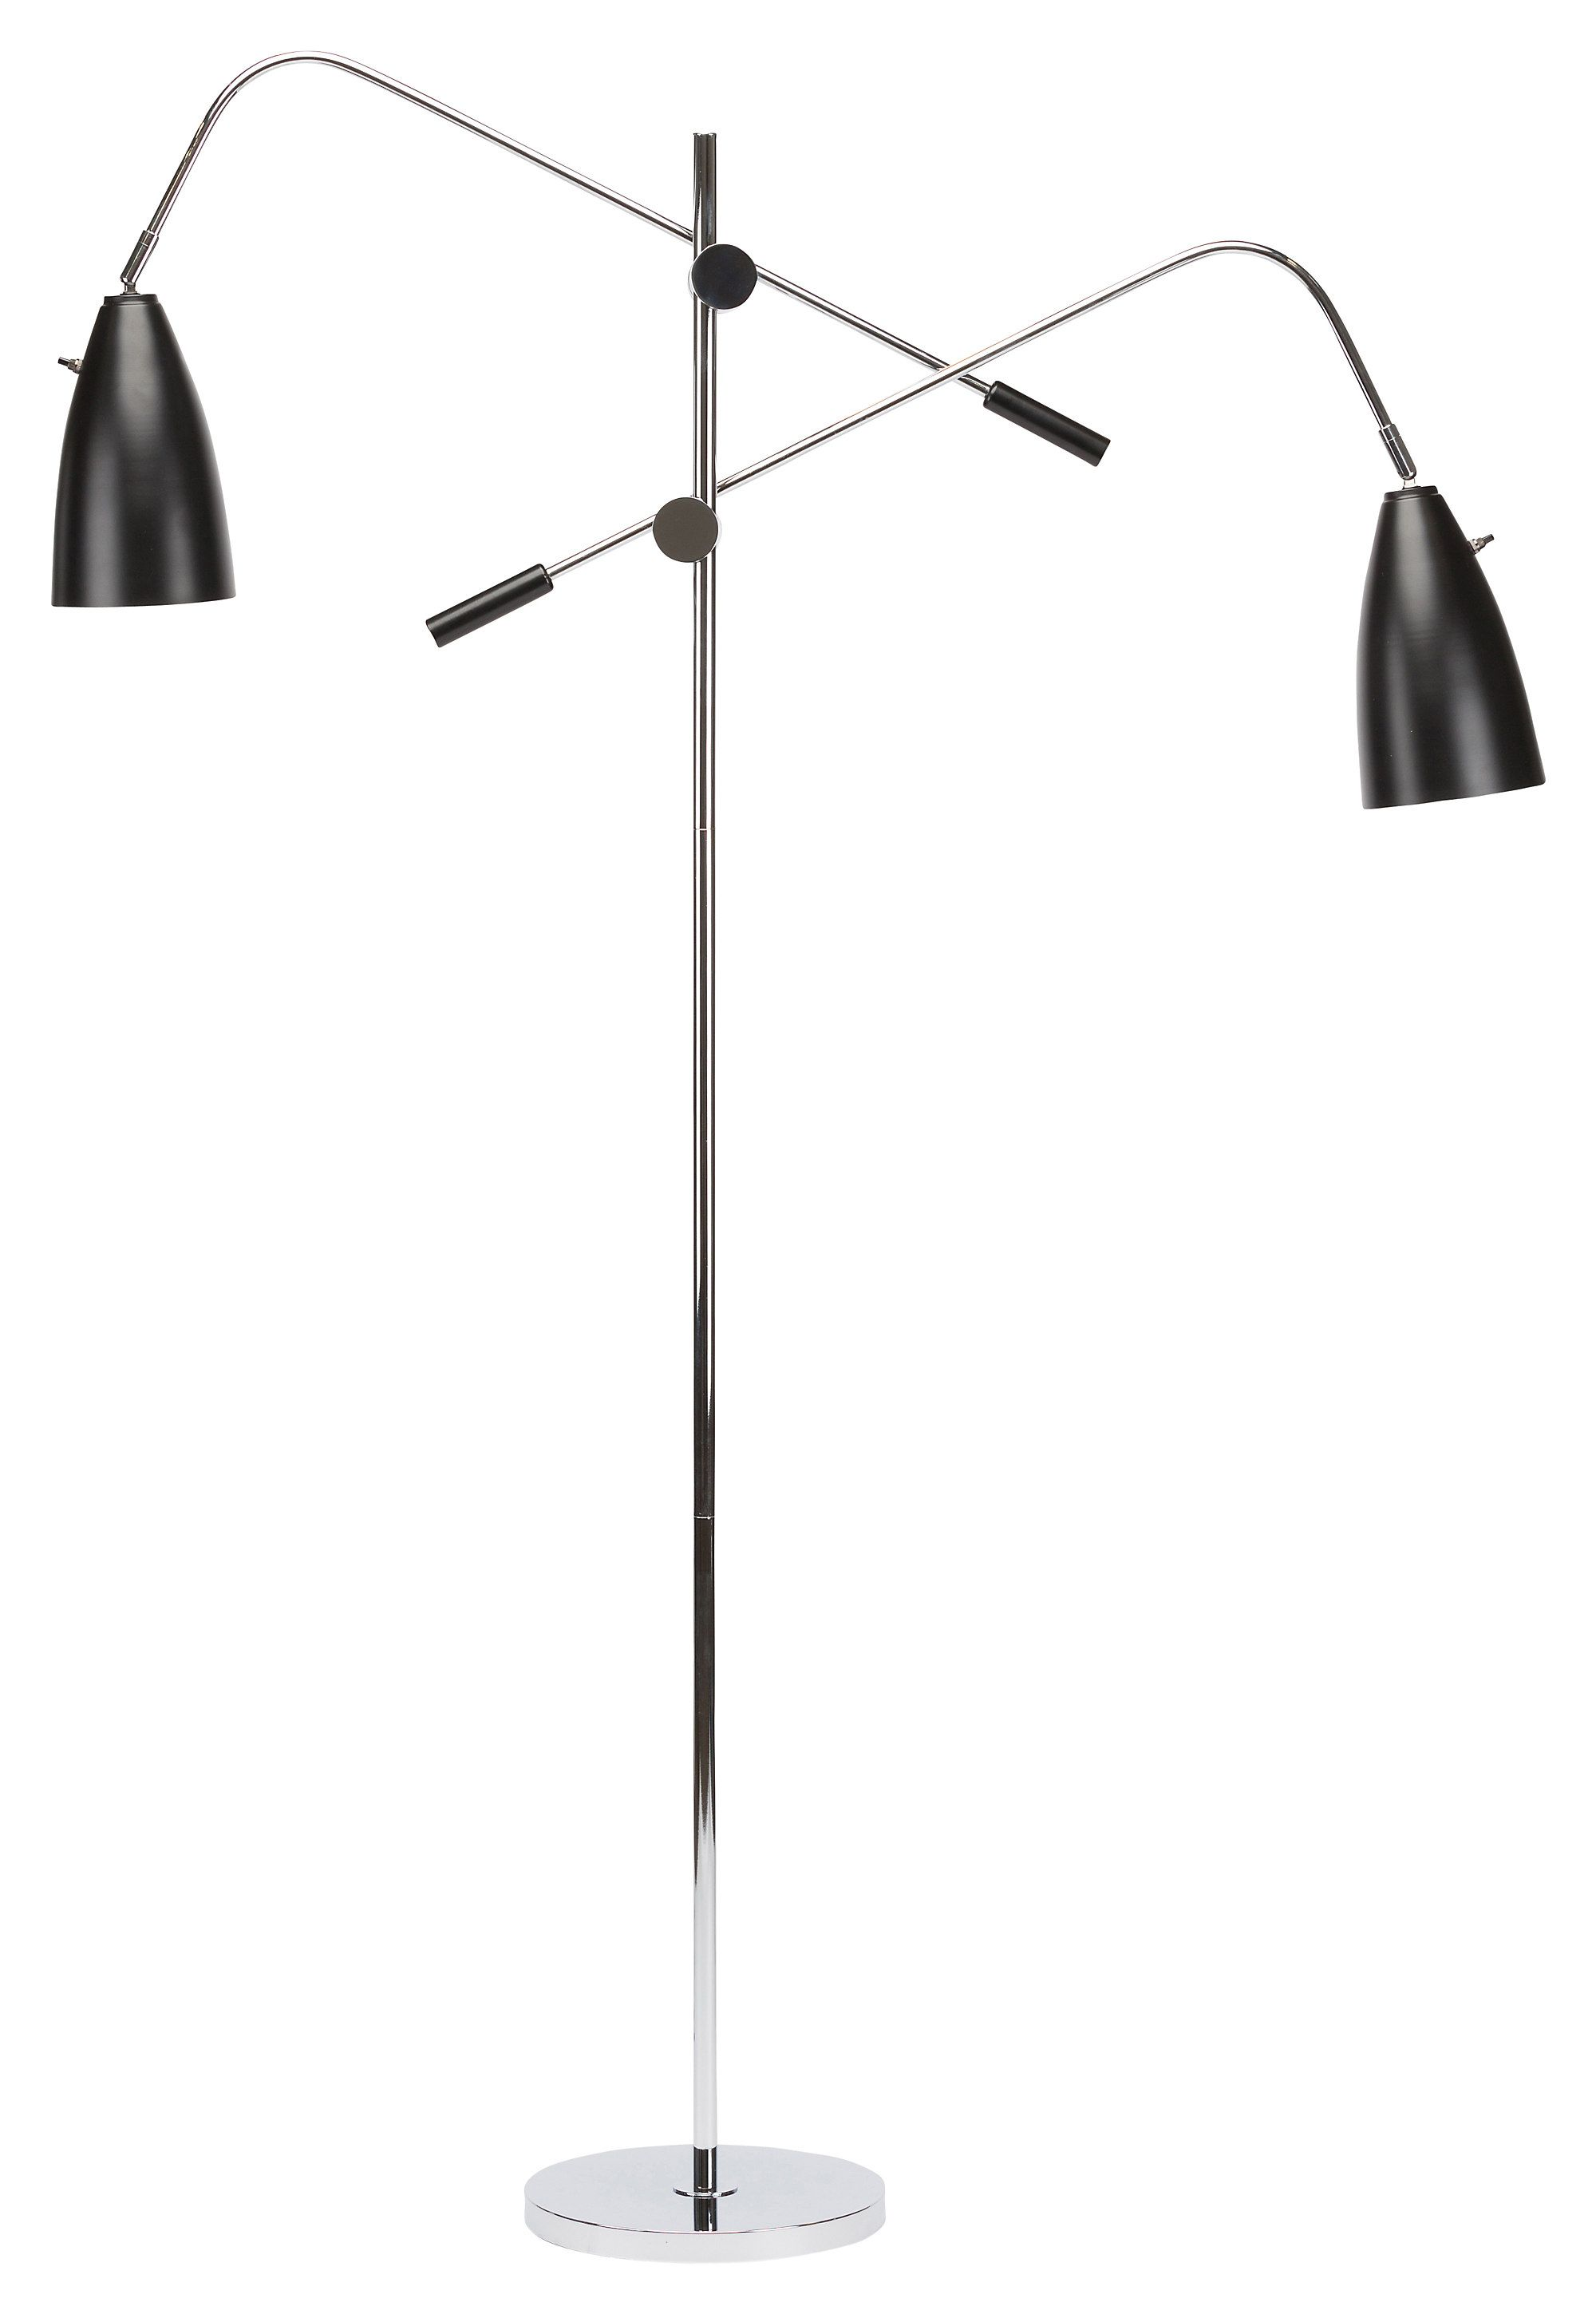 2Light Amsterdam Floor Lamp Floor lamp, Home decor